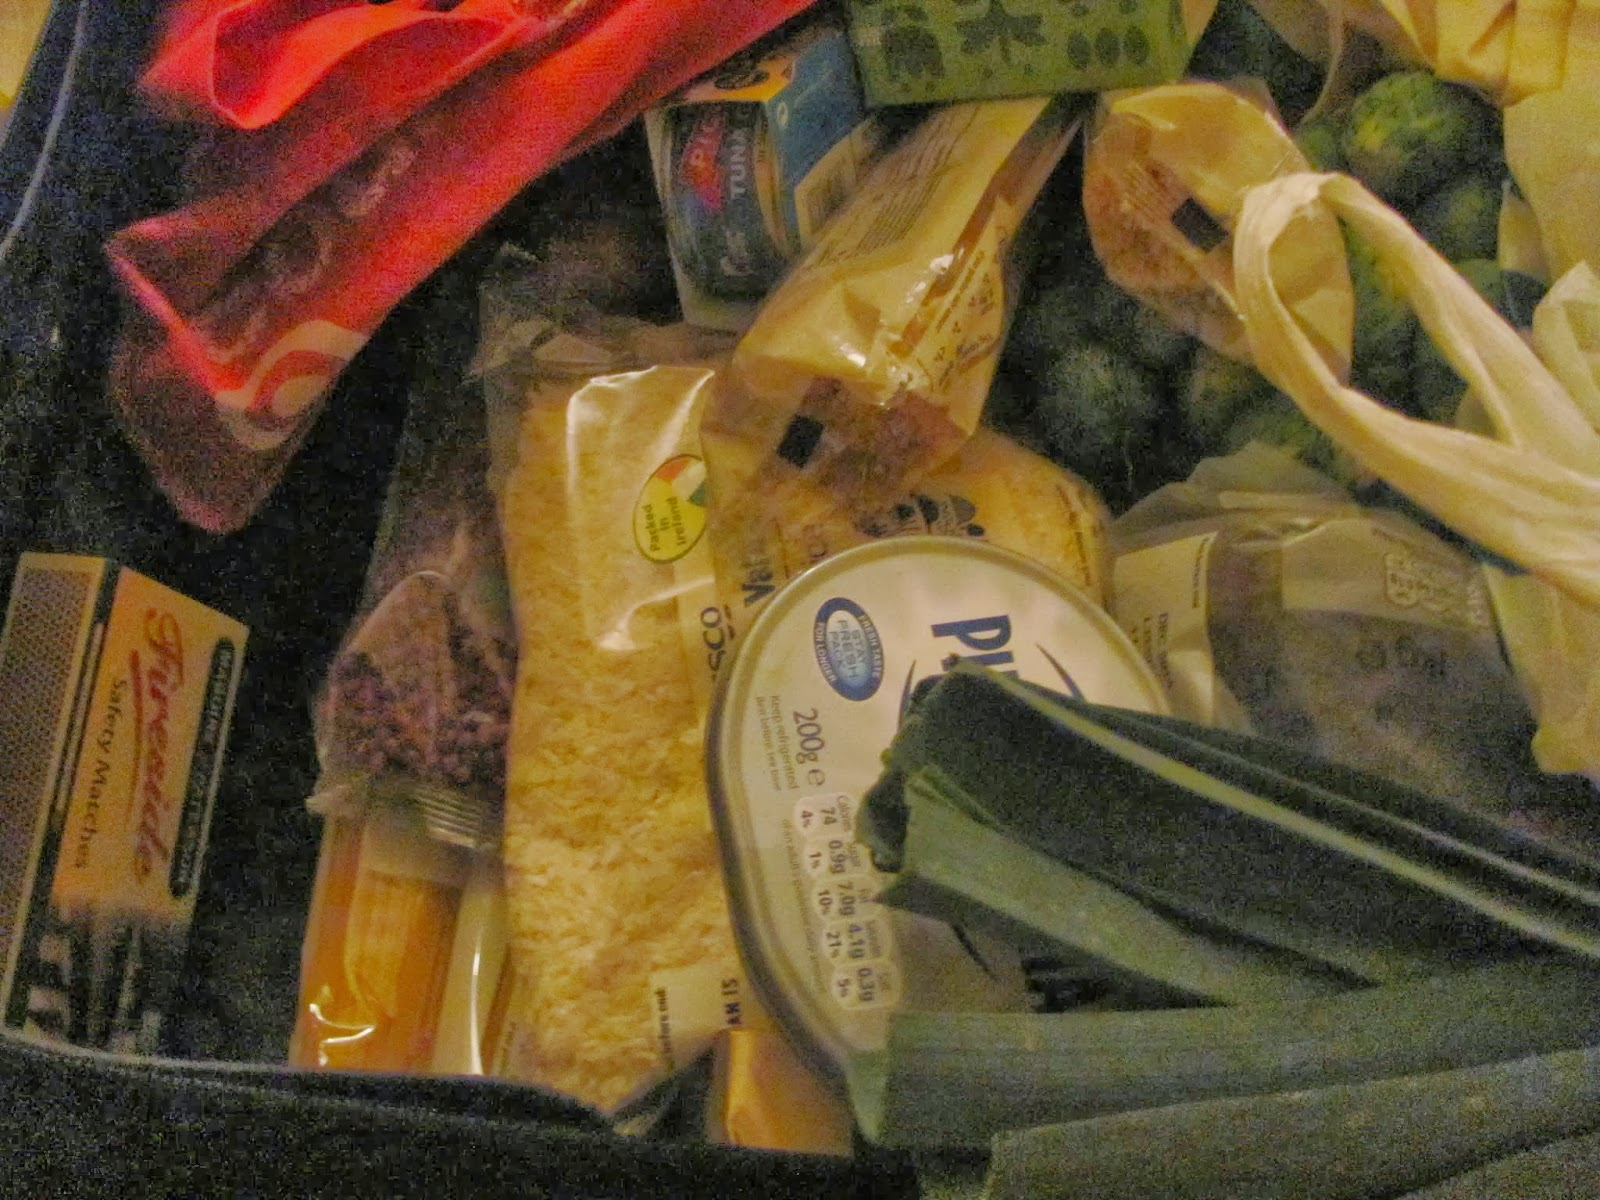 Groceries in the black suitcase seen close up